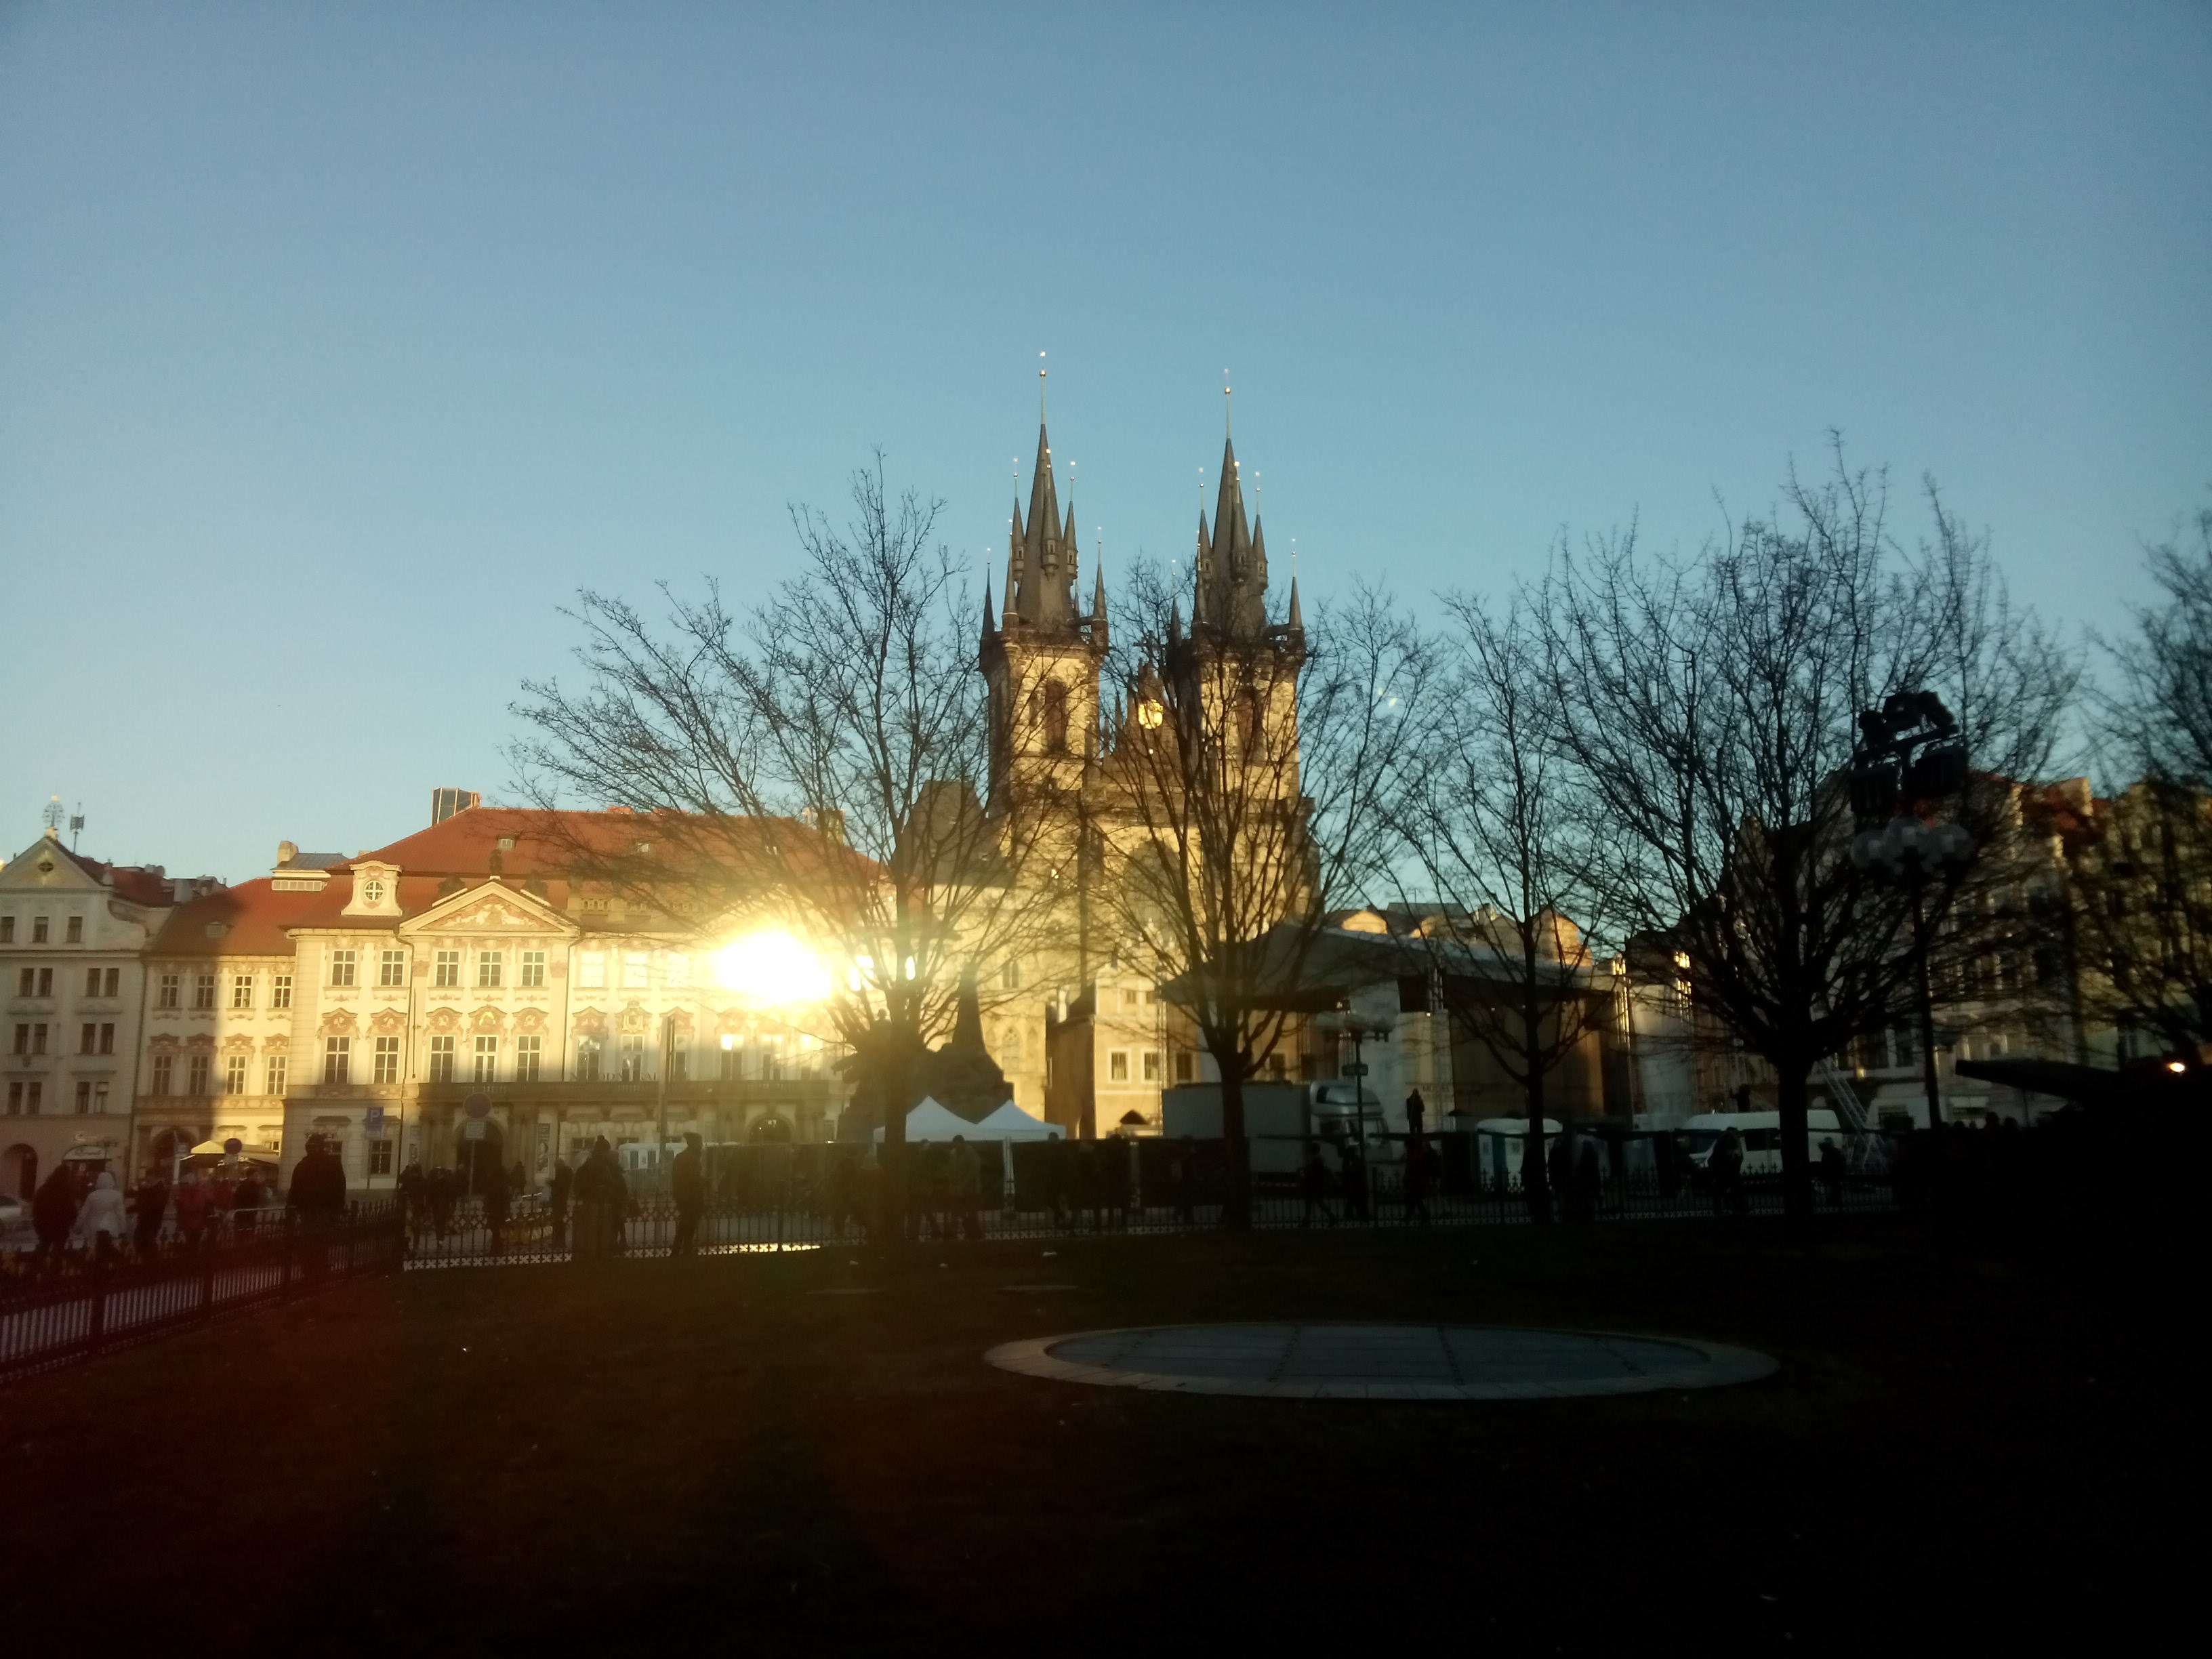 A church on the far side of a town square, with trees silhouetted against a blue sky and the reflection of a dusk sun